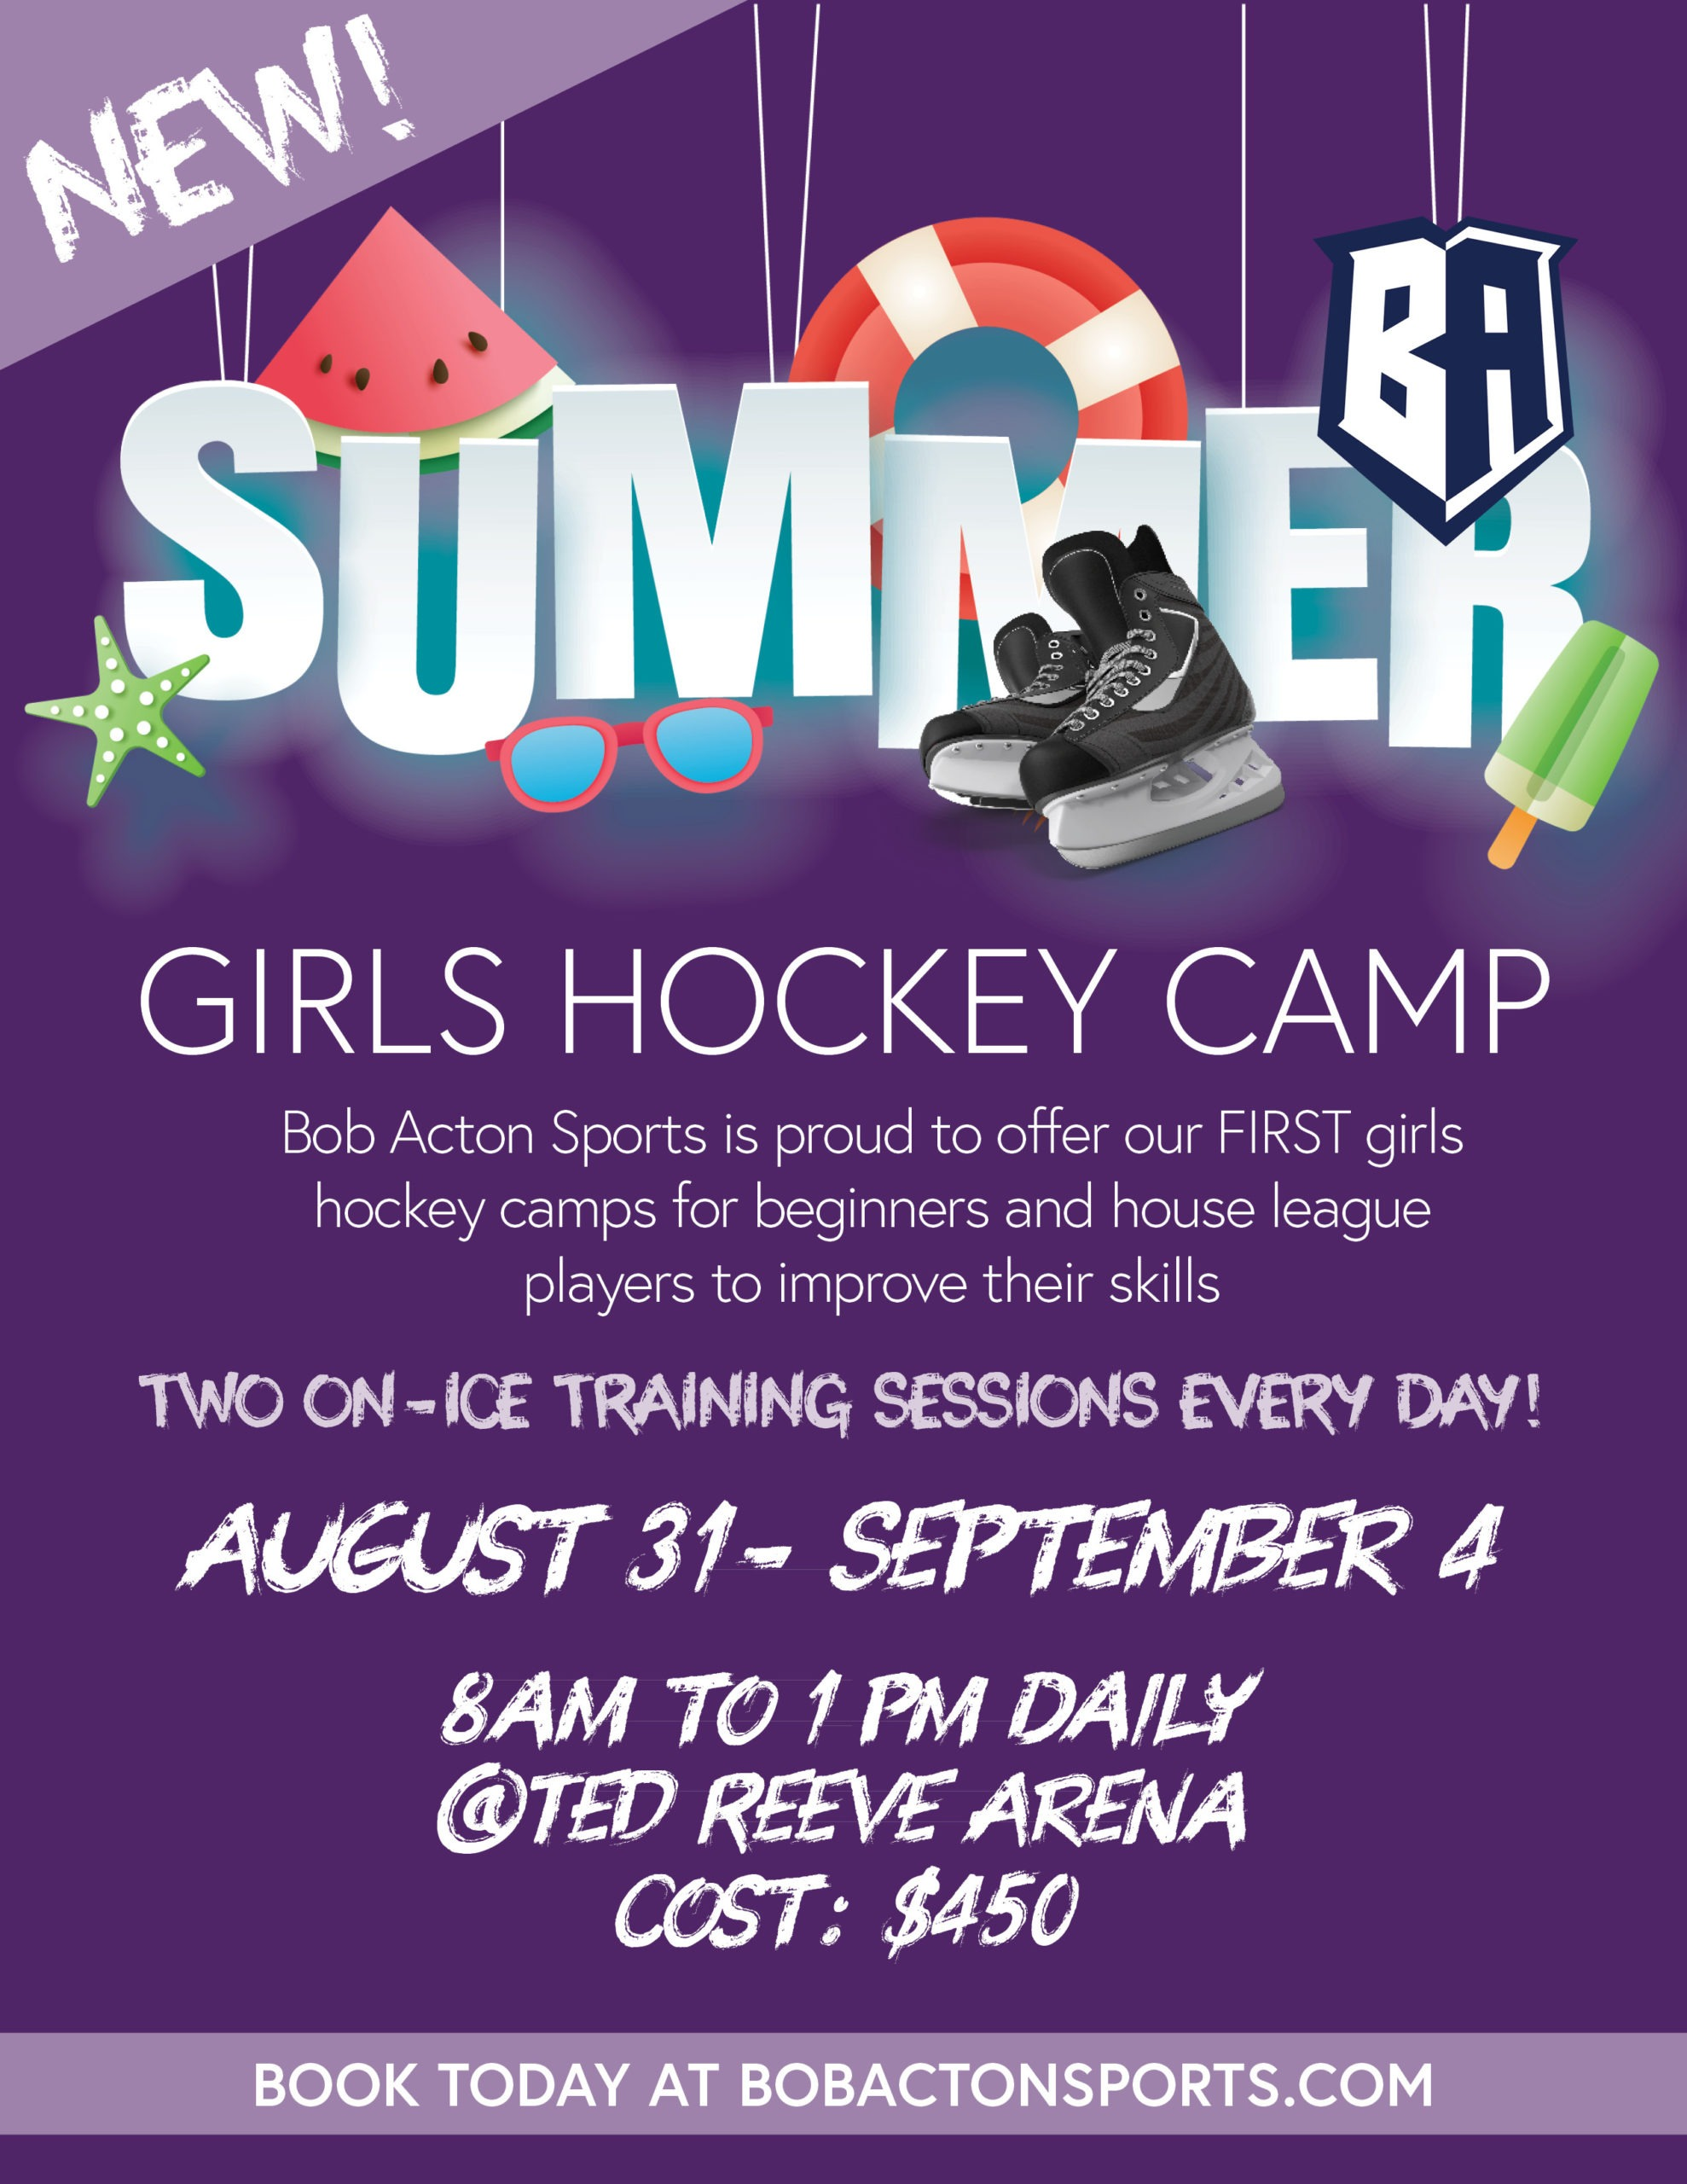 GIRLS HOCKEY CAMP